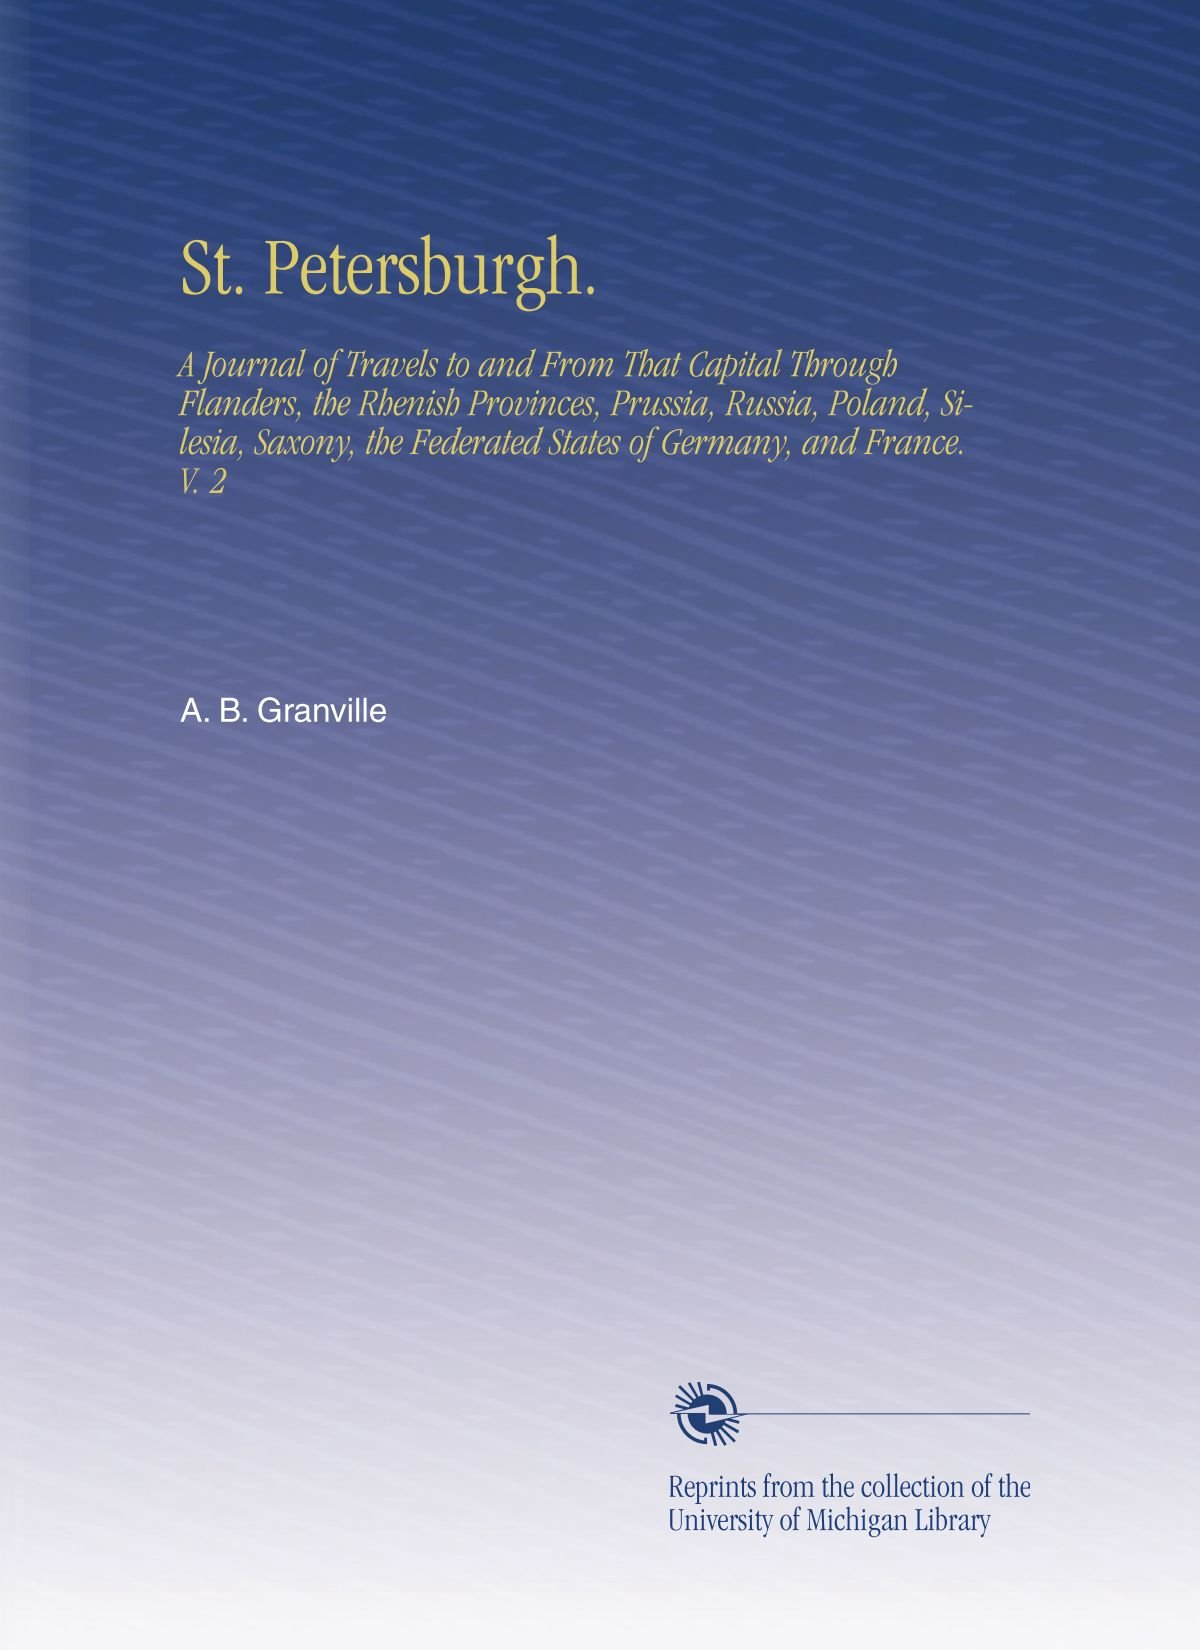 St. Petersburgh.: A Journal of Travels to and From That Capital Through Flanders, the Rhenish Provinces, Prussia, Russia, Poland, Silesia, Saxony, the Federated States of Germany, and France. V. 2 pdf